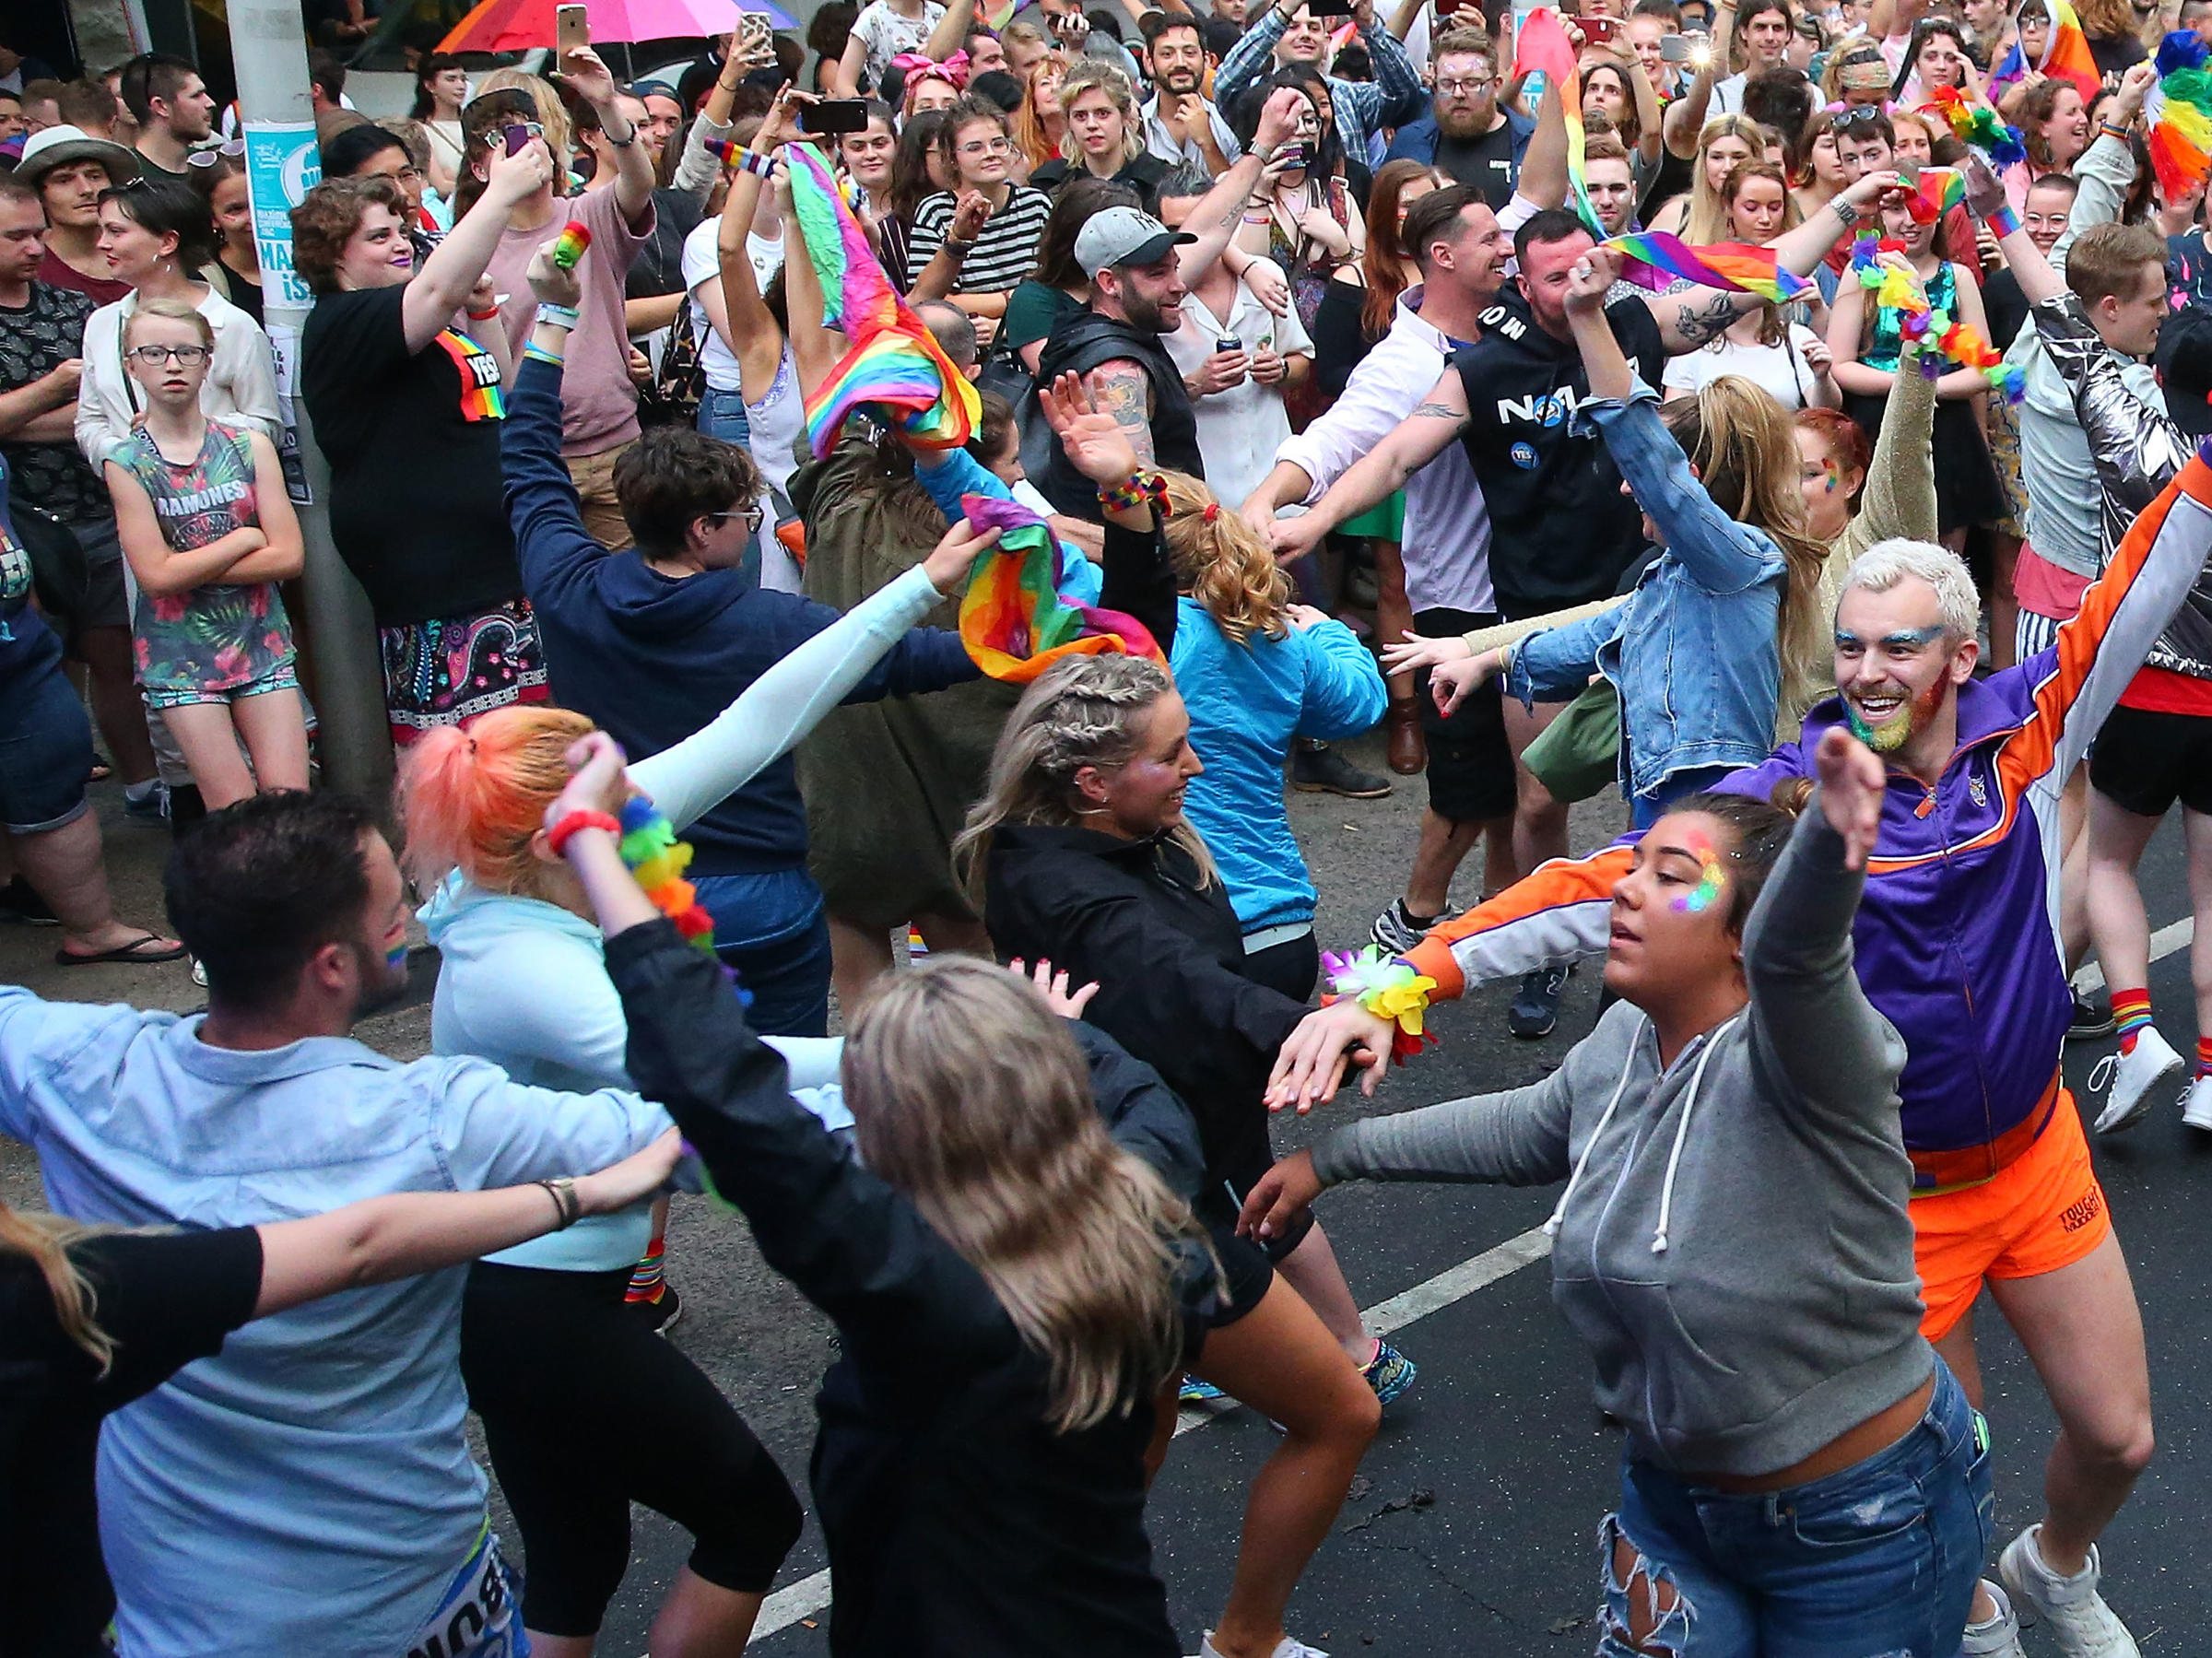 Australians Vote Yes On Gay Marriage Wkms